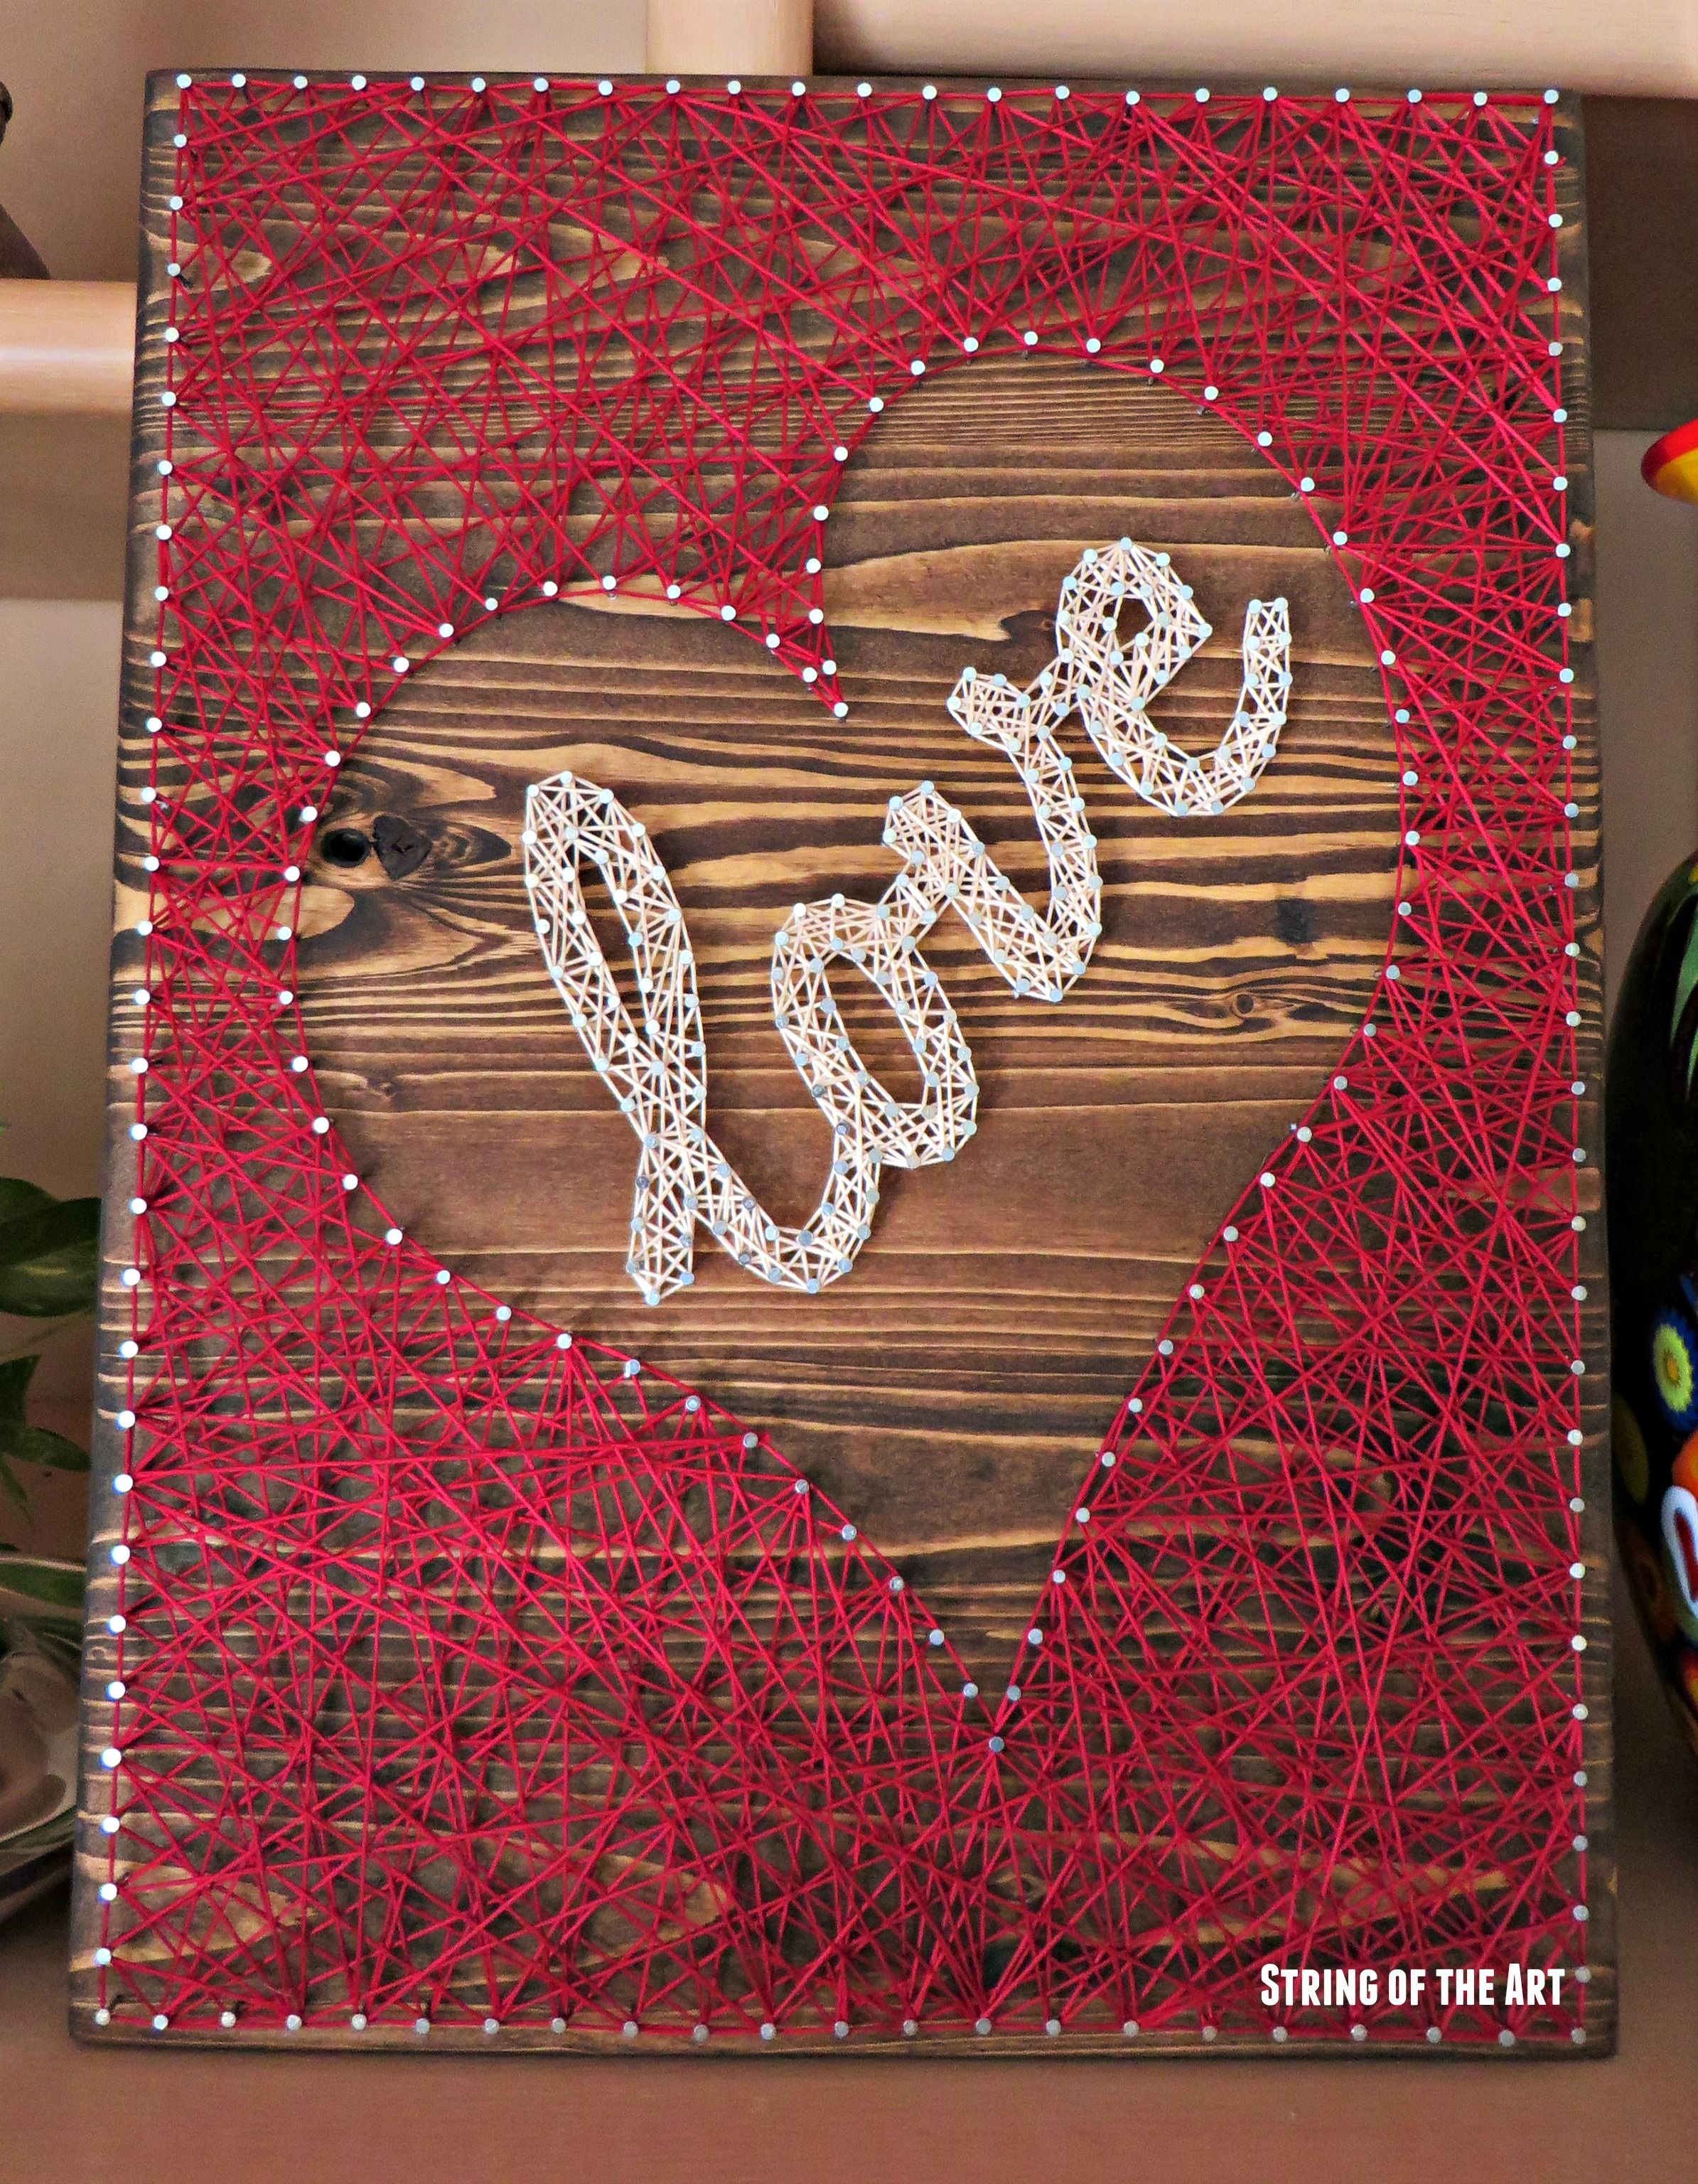 String Art Diy Crafts Kit Heart Decor Diy String Art Love Diy .